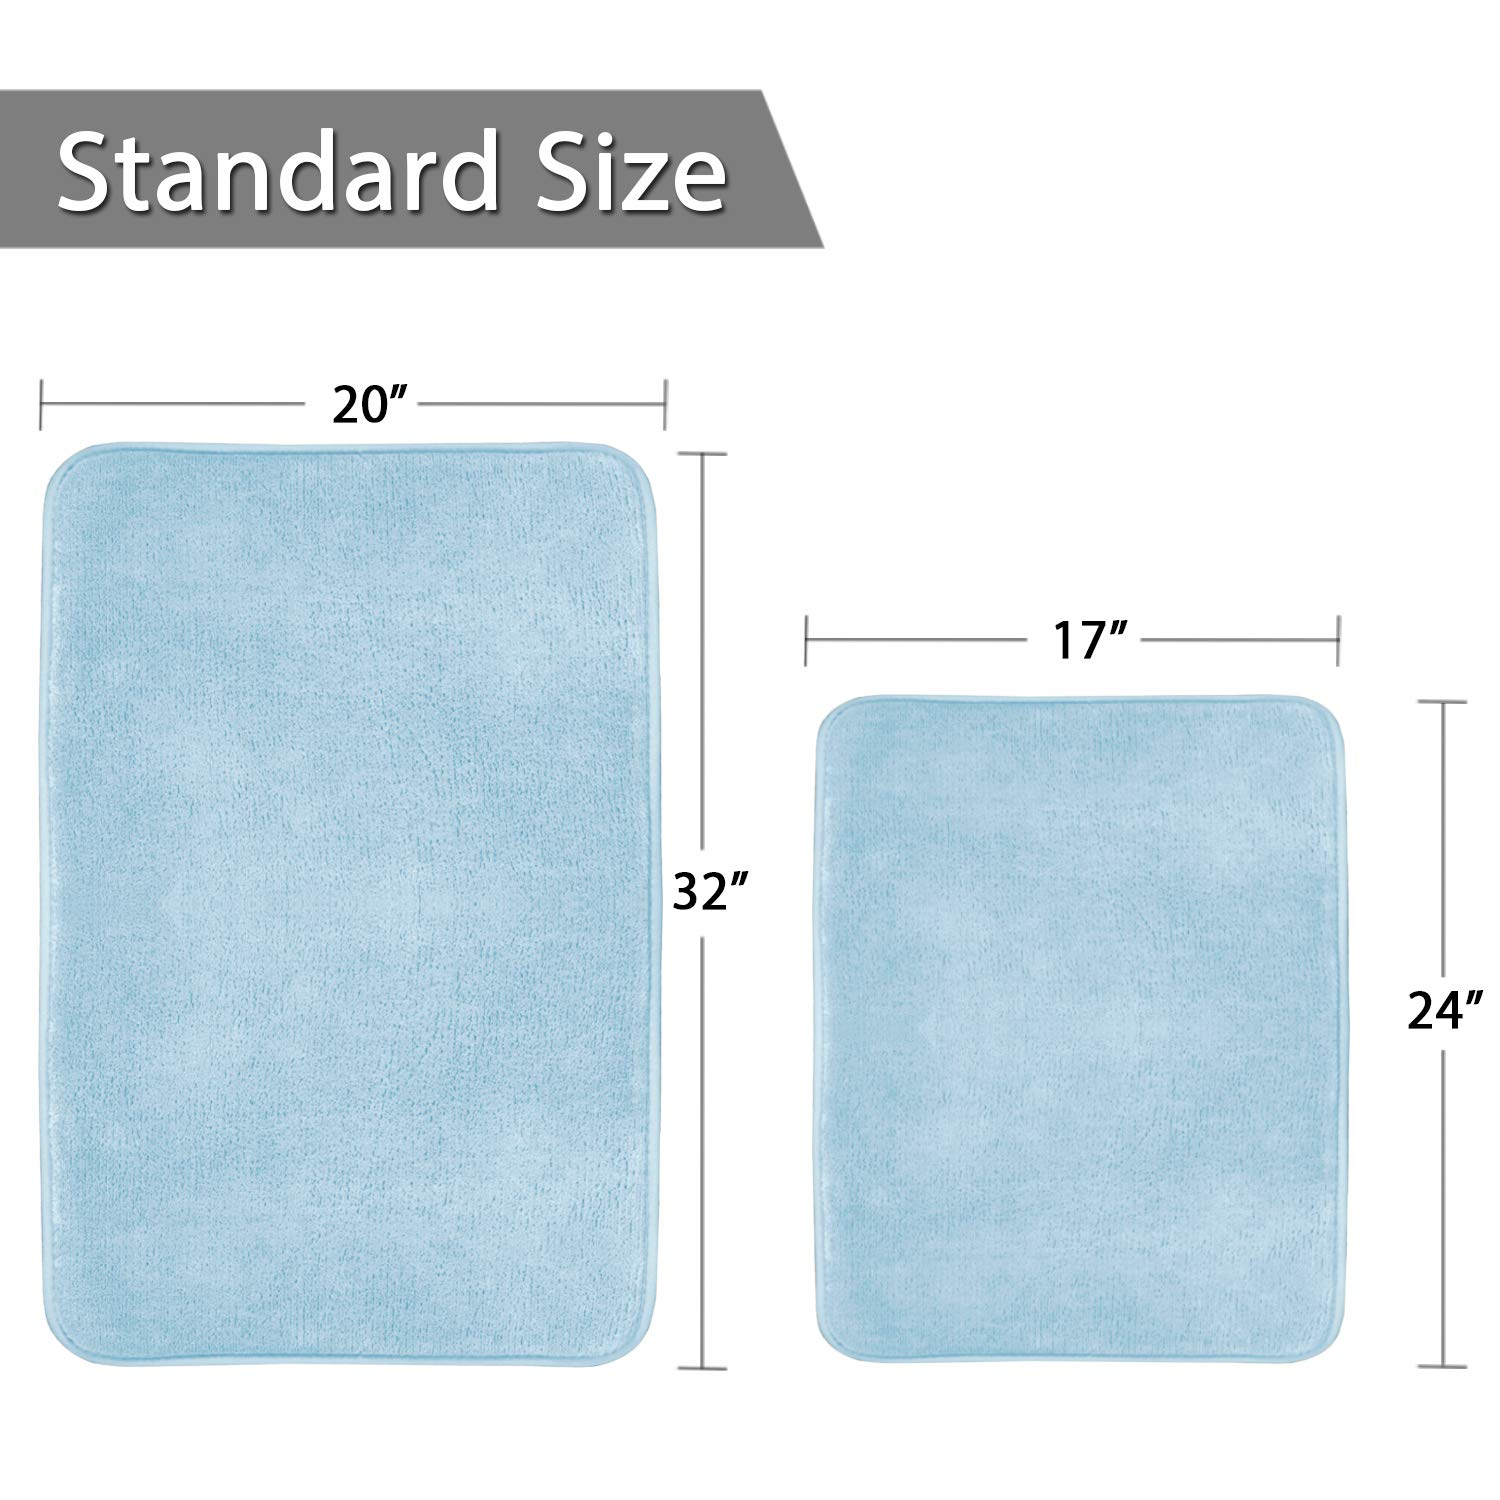 Memory Foam Bathroom Rug Set Ultra Soft Flannel Floor Mats Tufted Bath Rug with Non-Slip Backing Microfiber Door Mat for Kitchen/Entryway/Living Room (Pack 2-17'' x 24''/ 20'' x 32''- Sky Blue) by Flamingo P (Image #7)